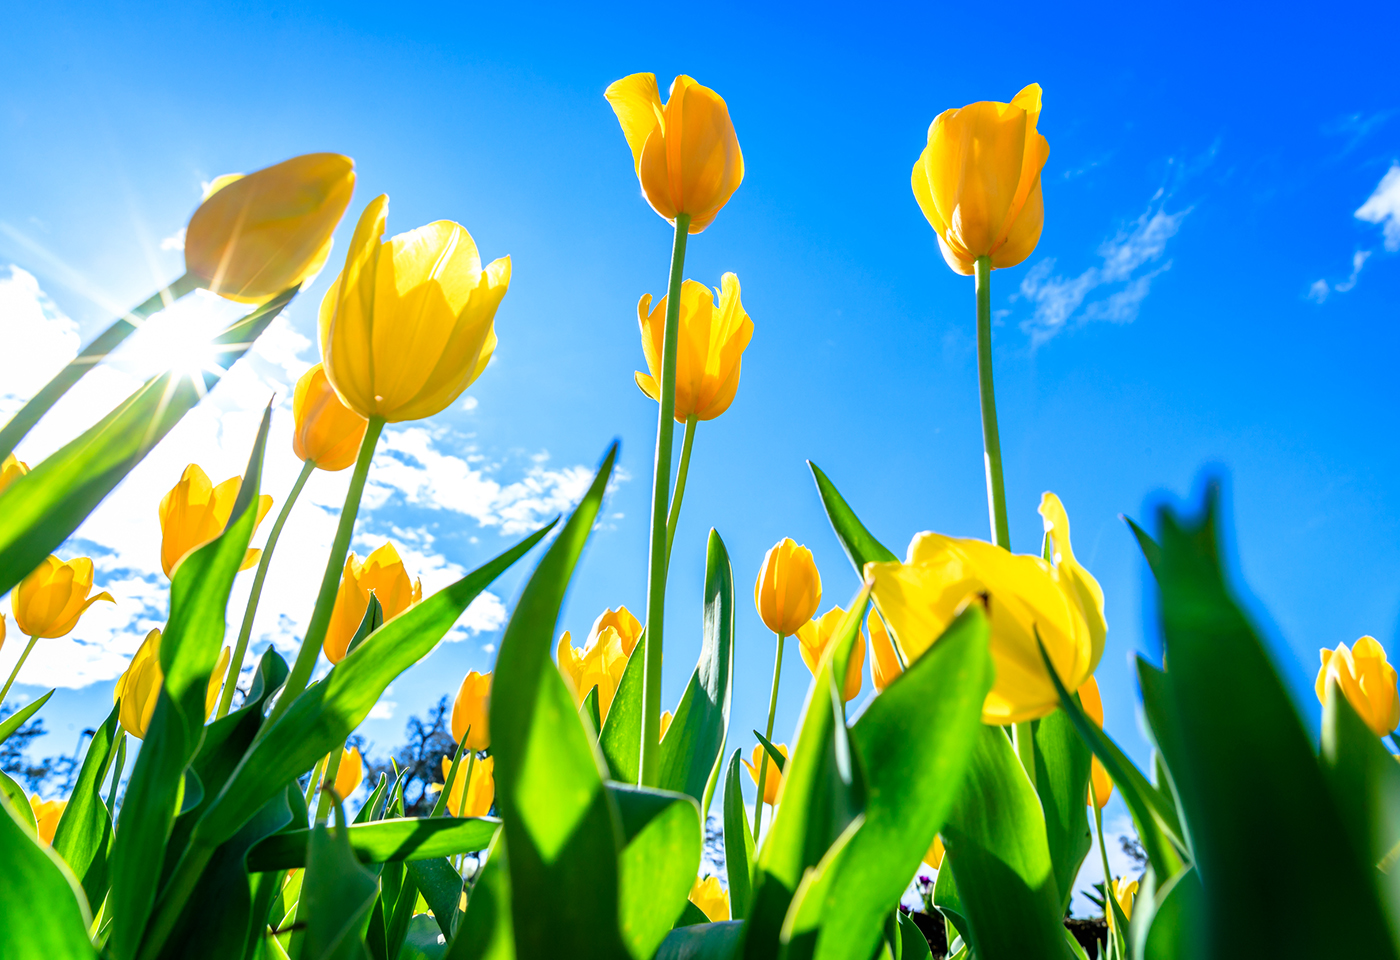 Image of yellow tulips and blue sky